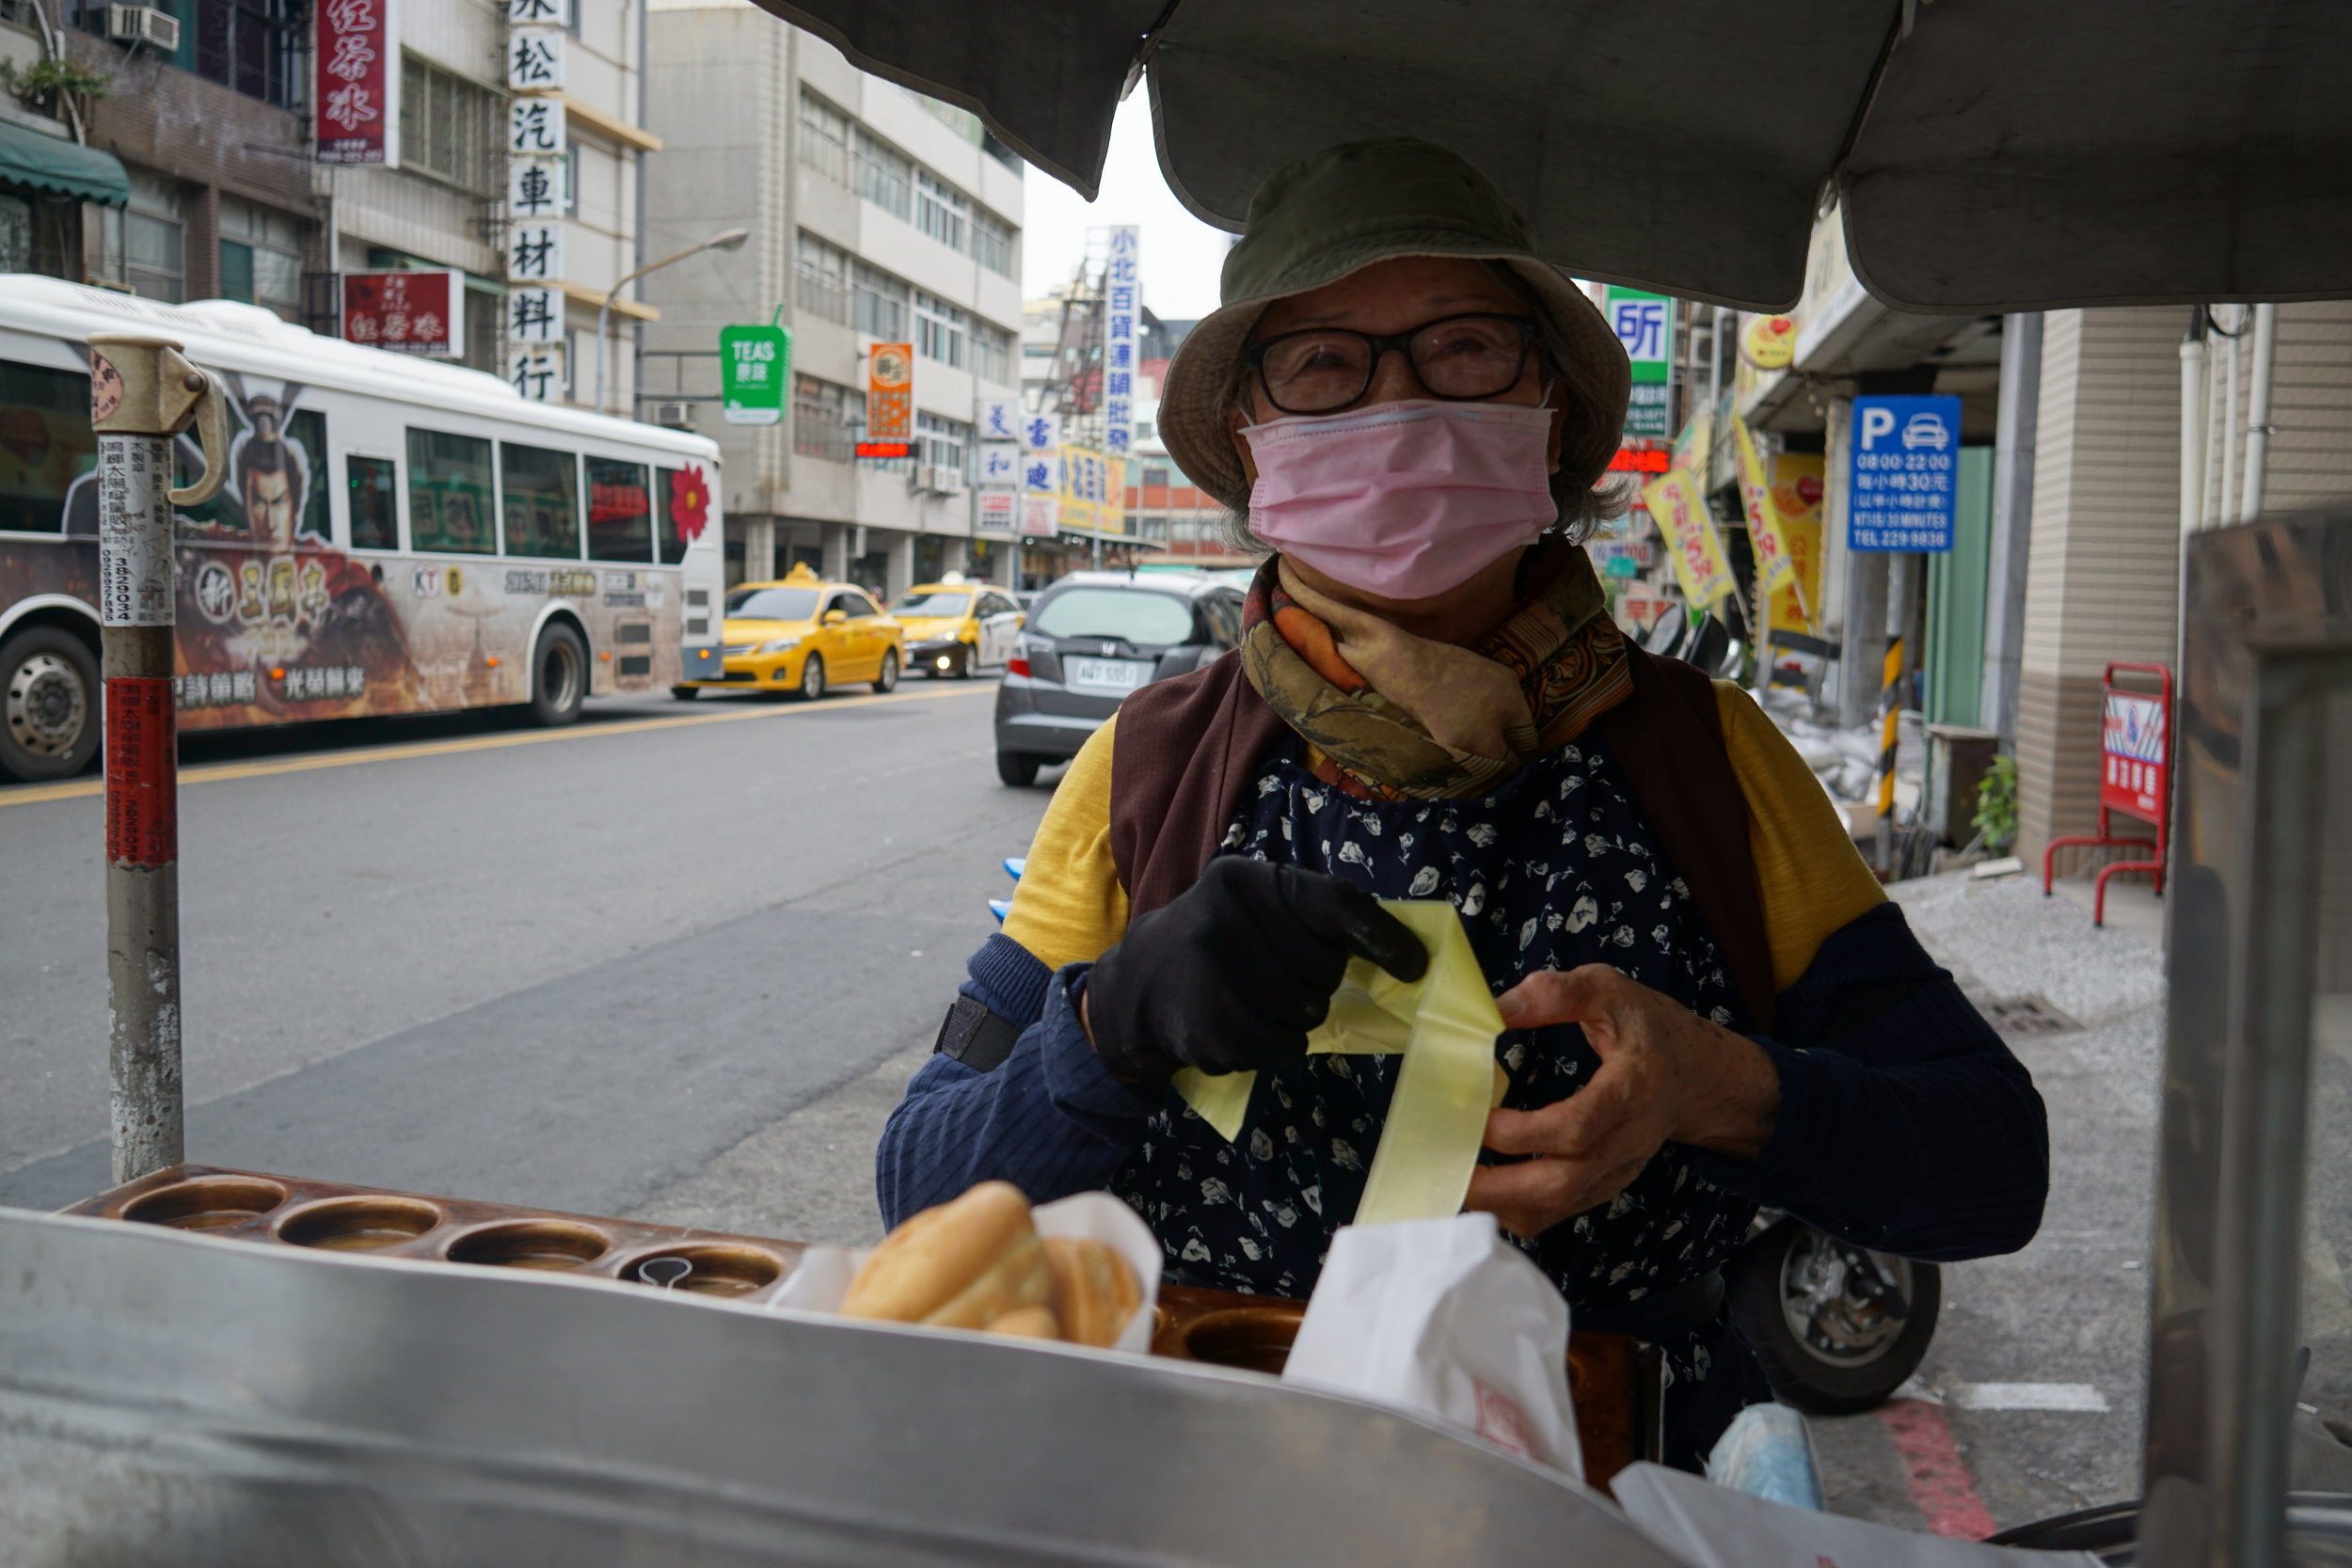 Air pollution blights kaohsiung, the port city where it is home to many huge and polluting industries, A lady dons a mask as she bakes taiwanese pancakes